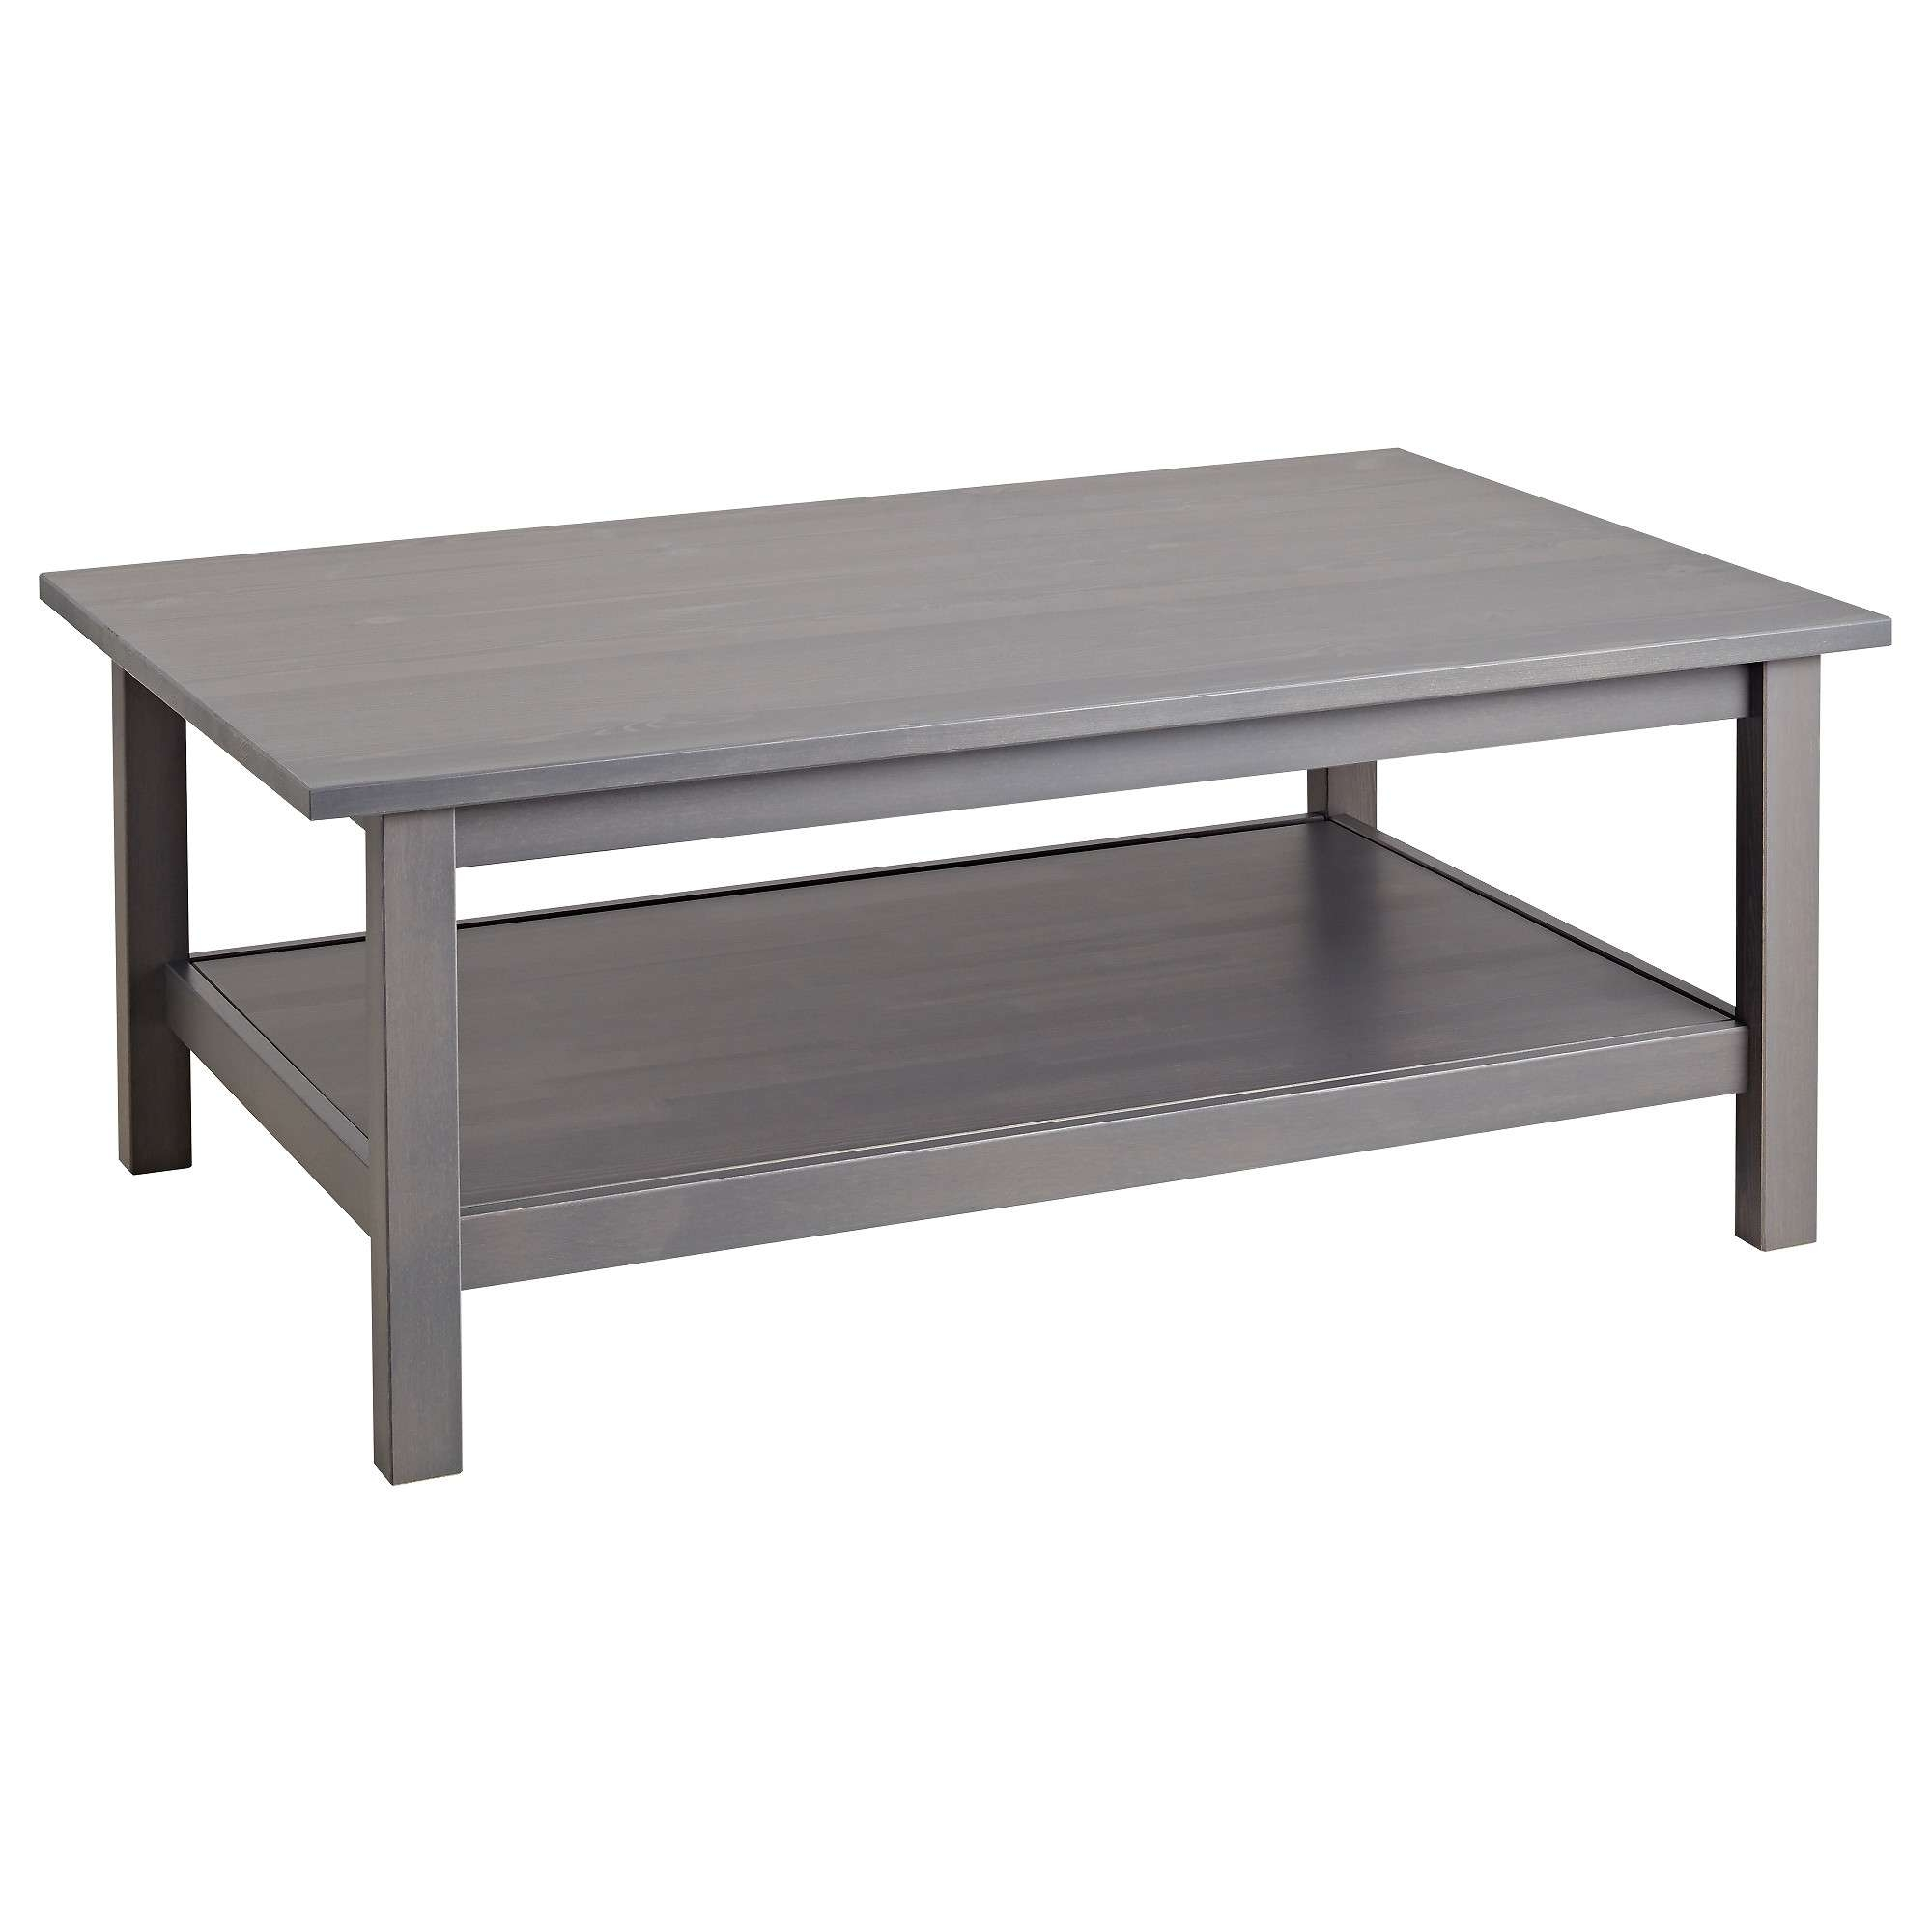 Widely Used Coffee Tables With Baskets Underneath In Coffee Tables & Console Tables – Ikea (View 19 of 20)